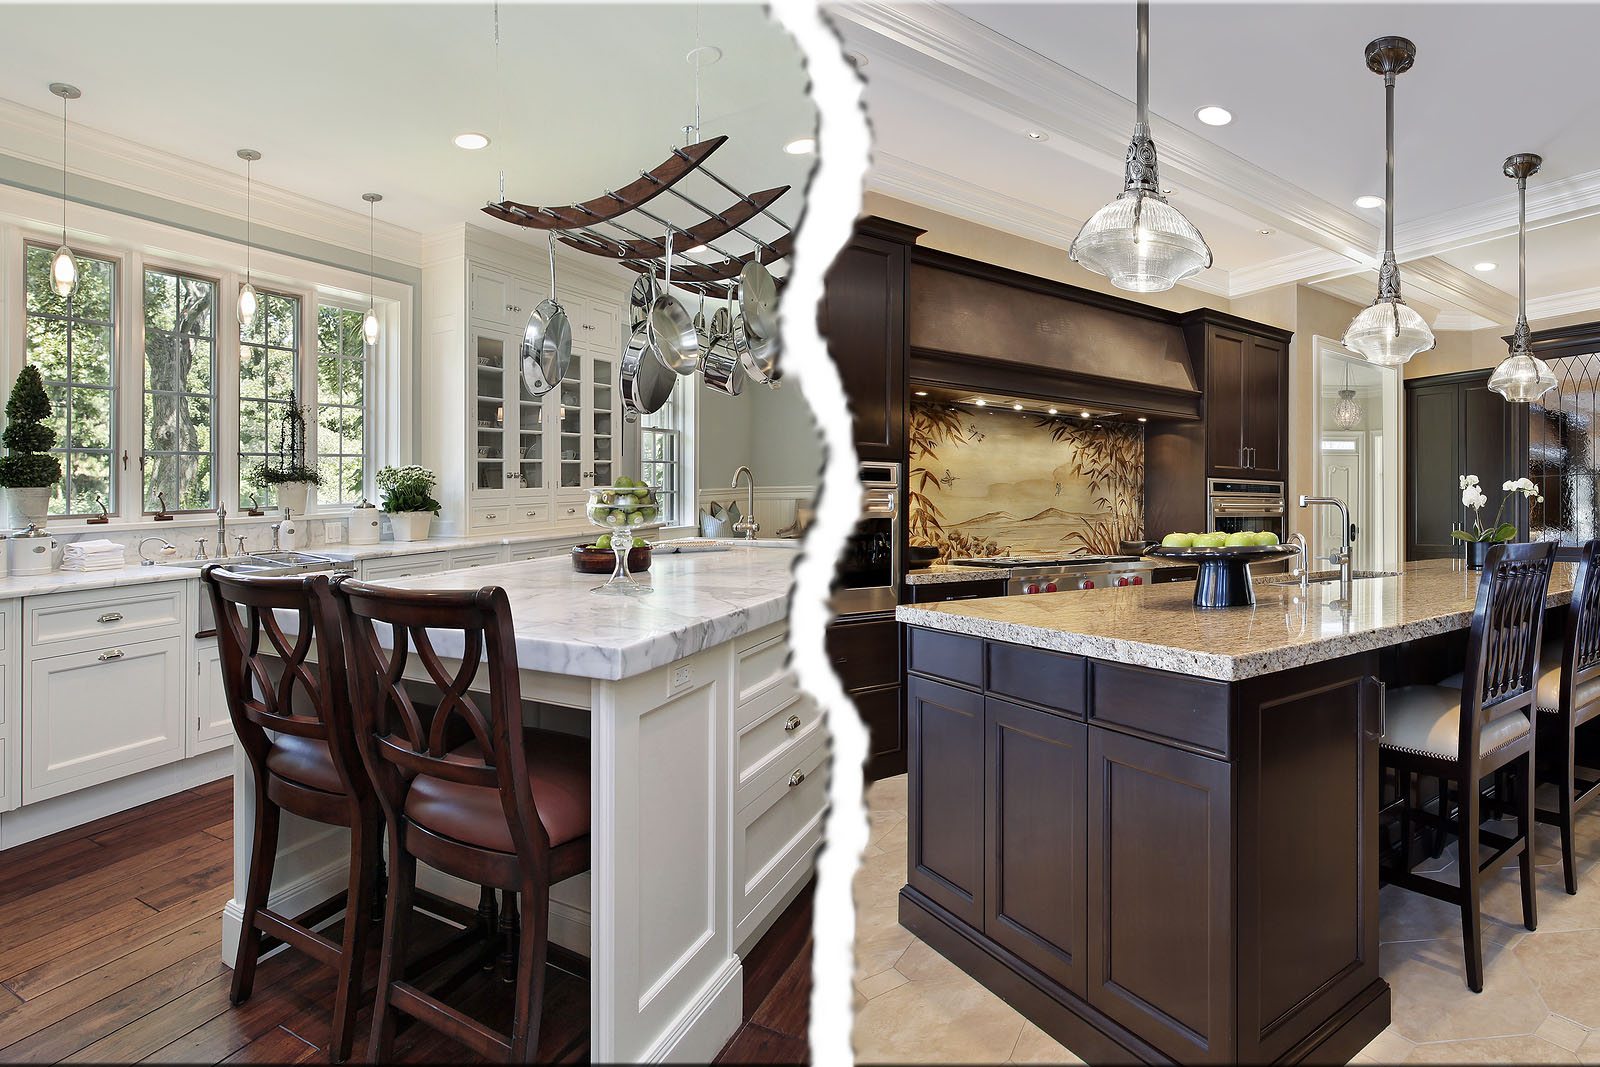 Fresh Coat Of Paint: Light Vs Dark Kitchens